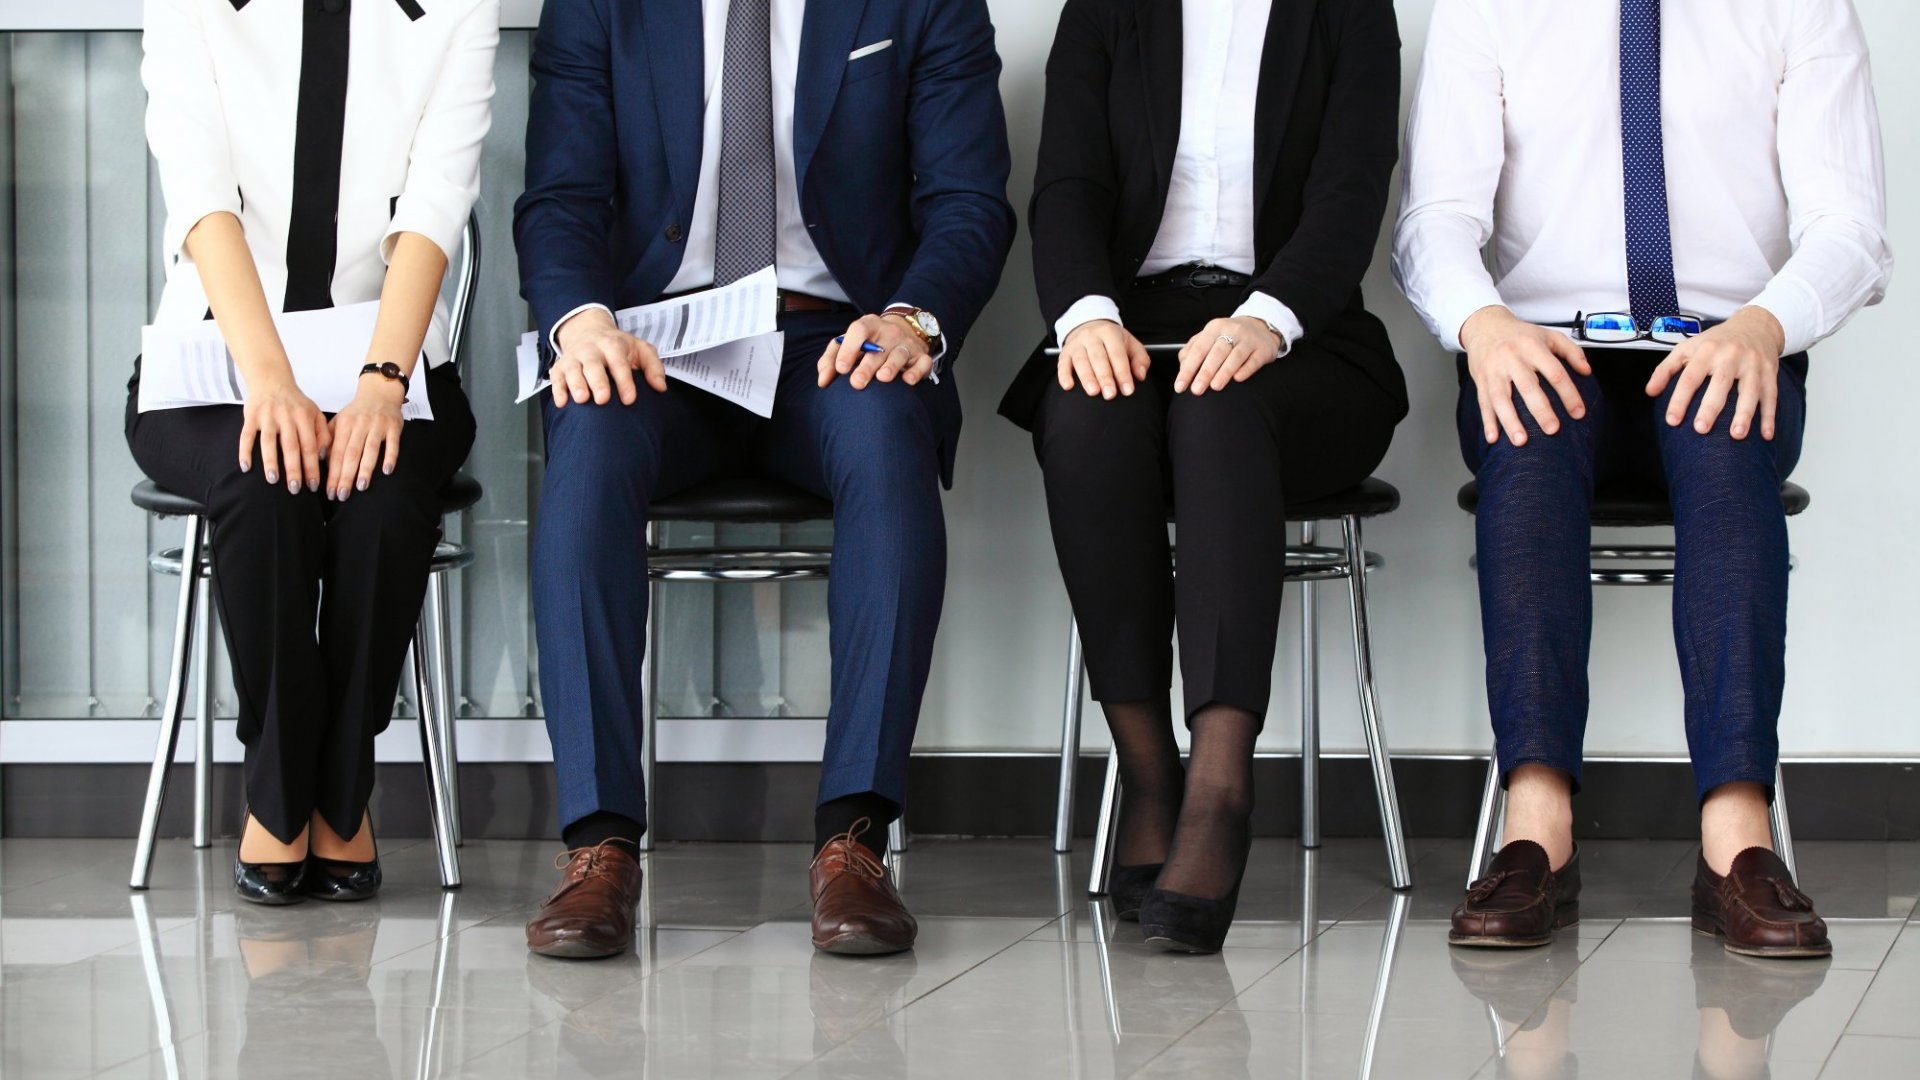 4 Things Job Applicants Always Get Wrong About the Interview Process